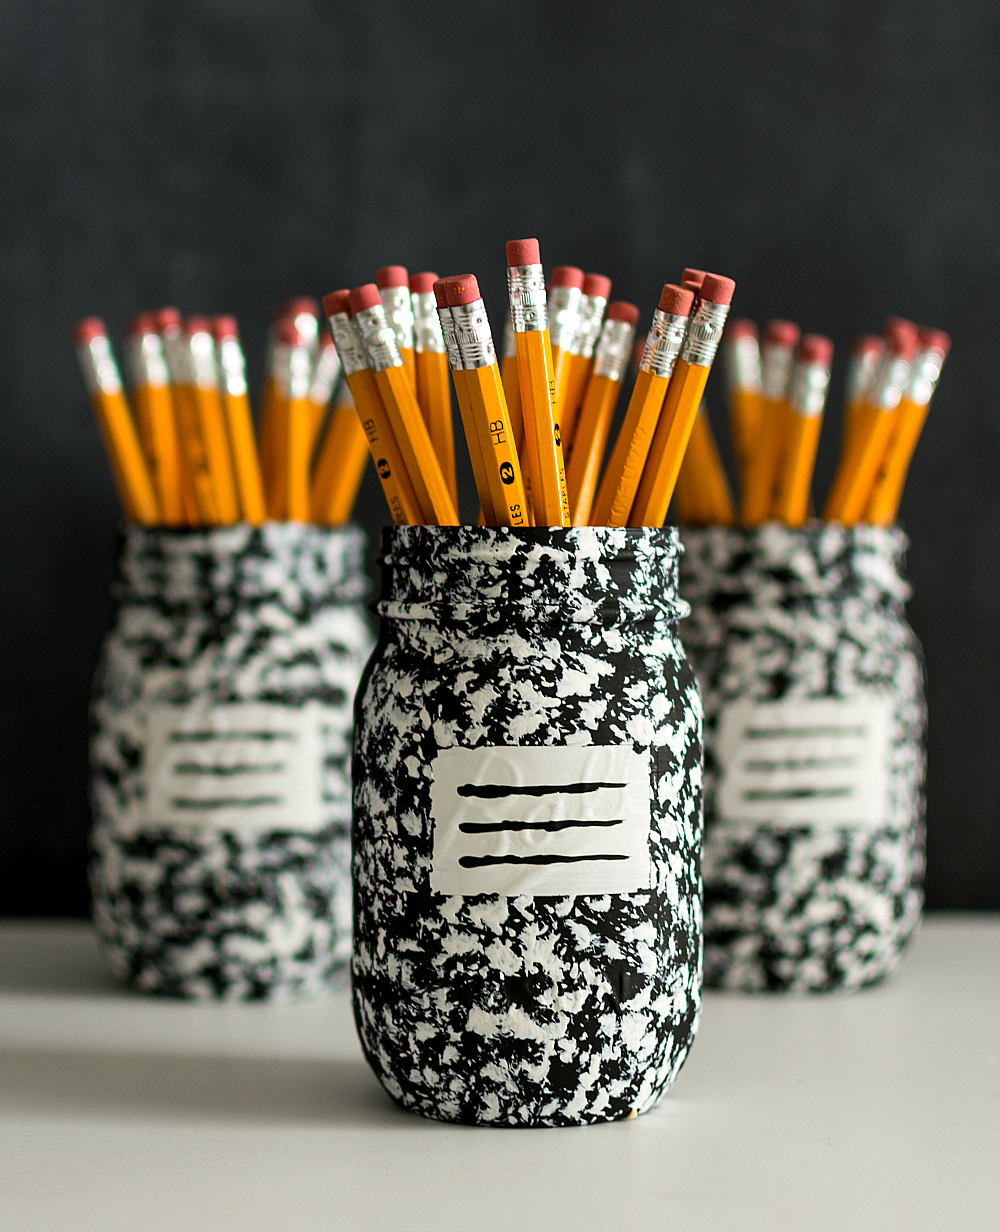 Desk Organizer Idea - Mason Jar Craft Ideas - Teacher Gifts